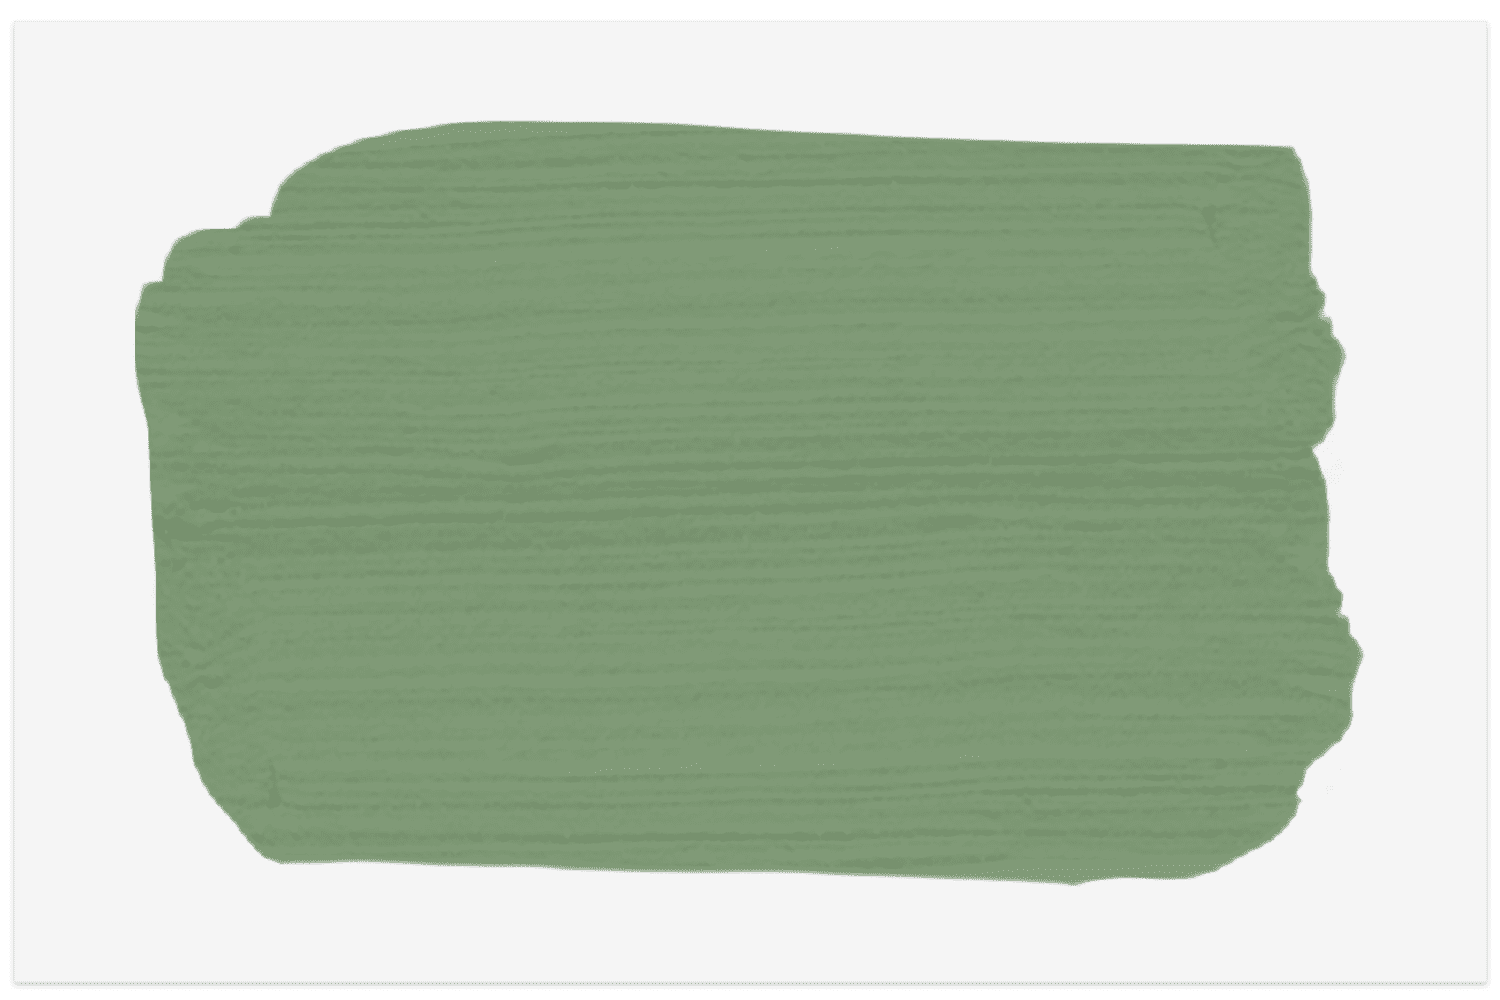 Breakfast Room Green swatch from Farrow and Ball